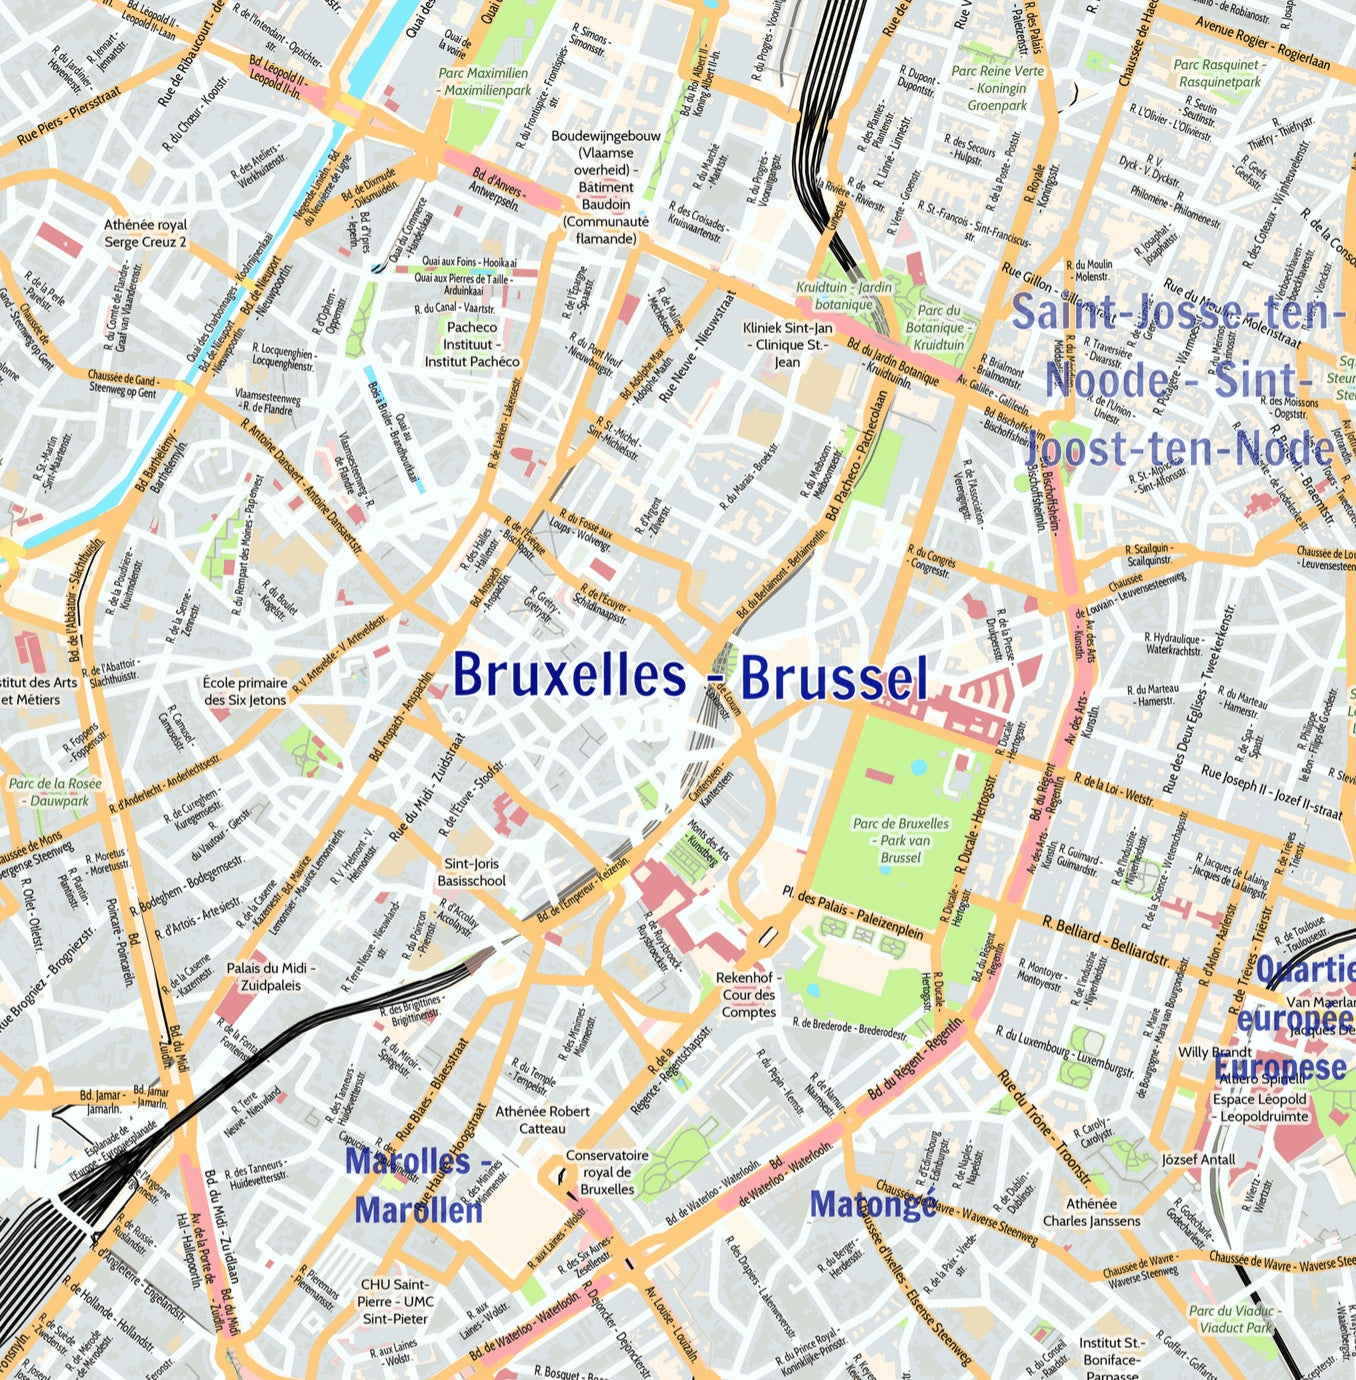 Brussels City Map - Laminated Wall Map of Brussels, Belgium